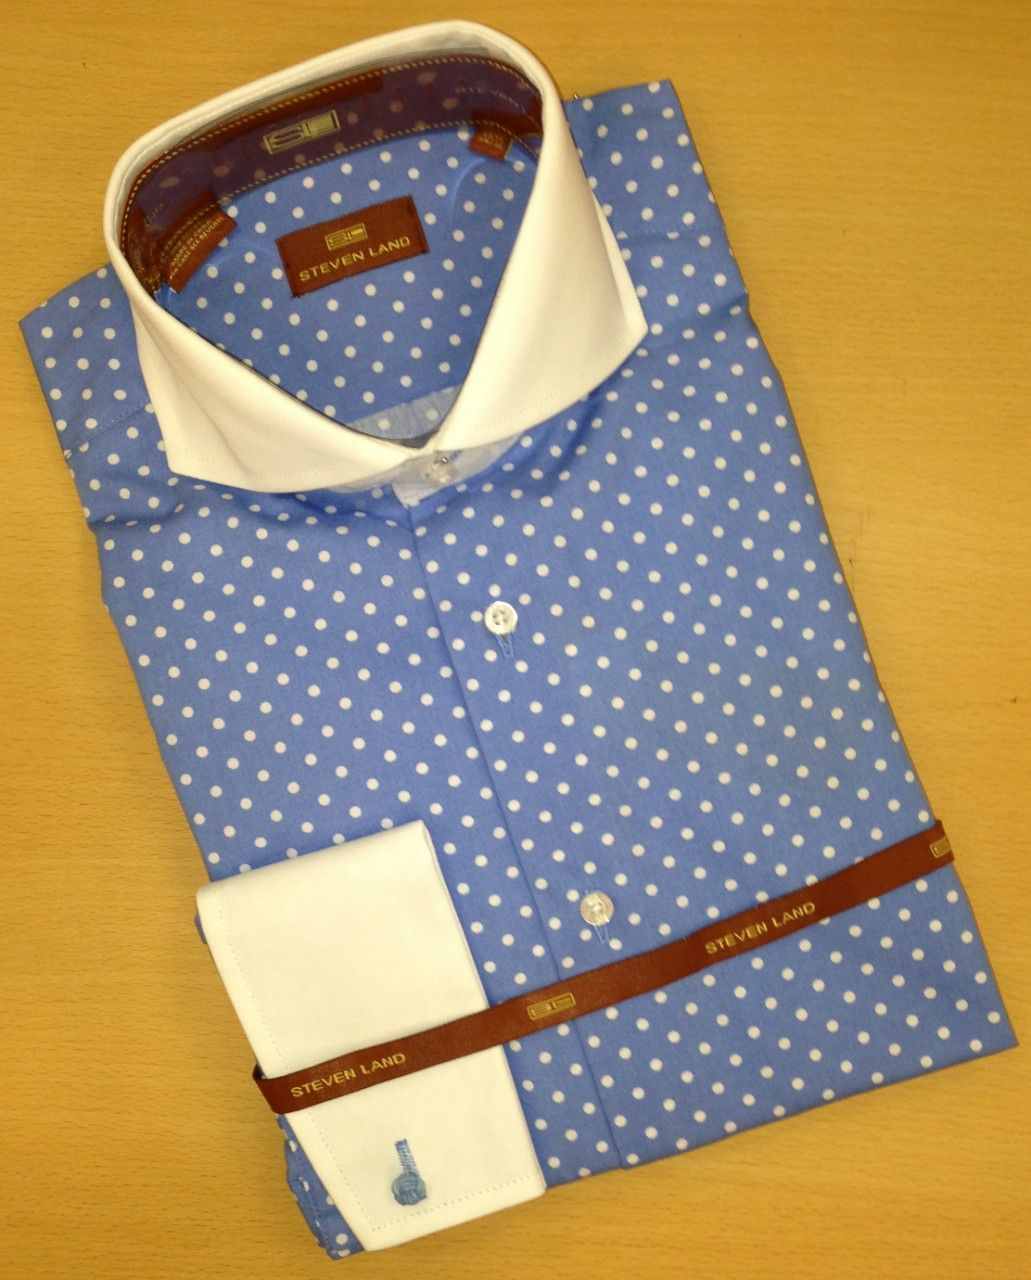 Men's Steven Land Polka Dot Dress Shirt - French Blue